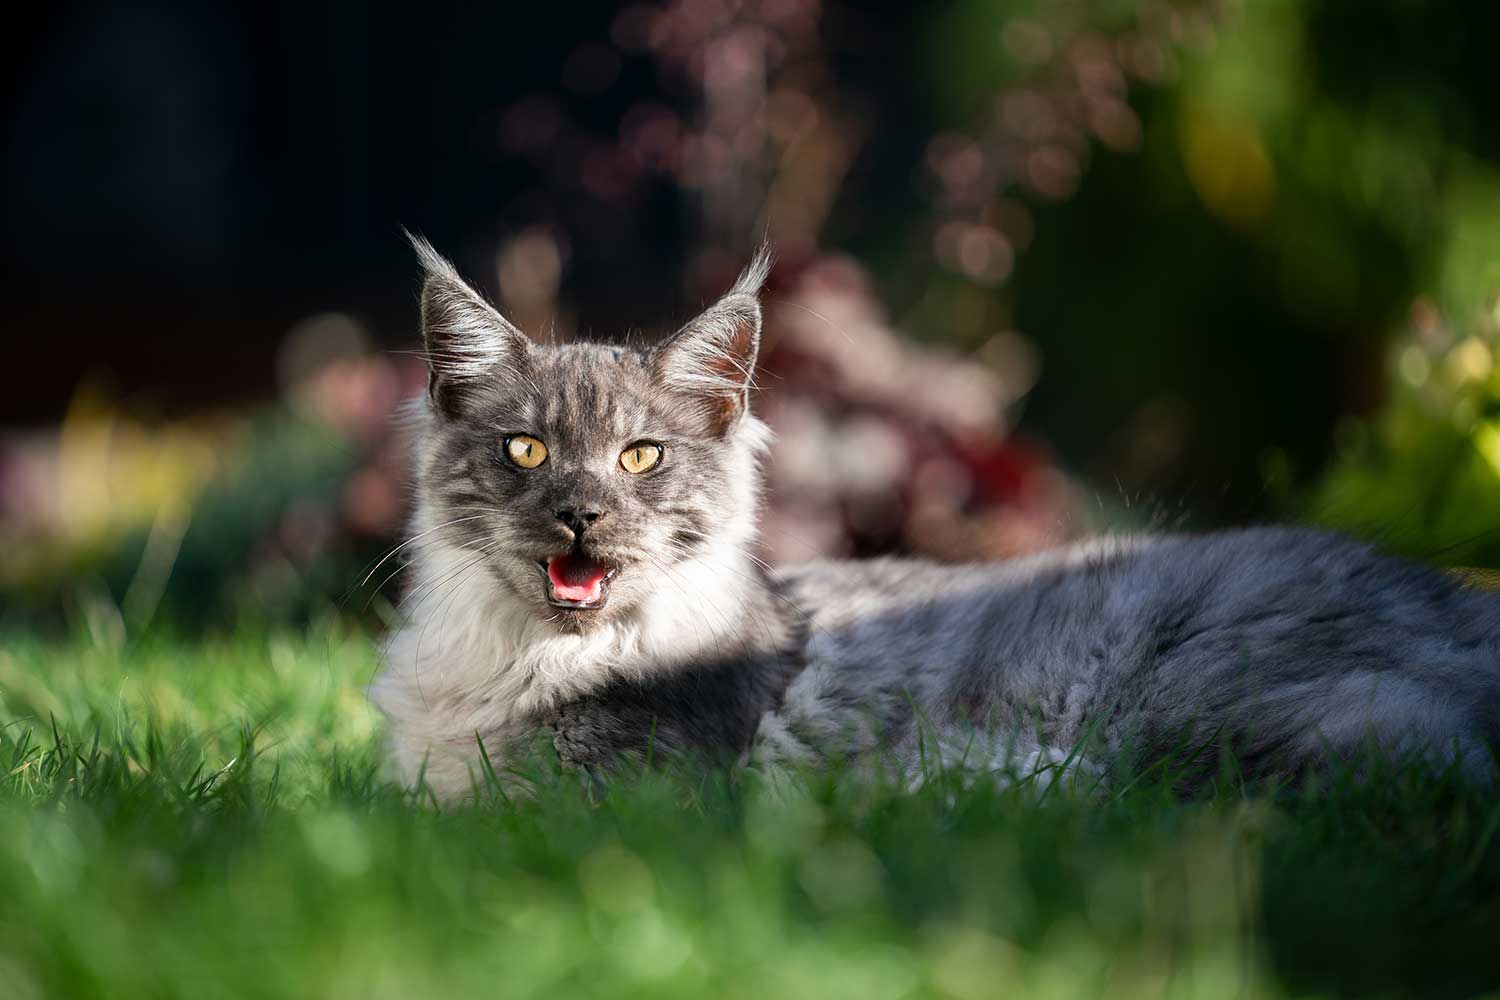 Overheated maine coon cat outdoors in sunlight panting on a hot summer day